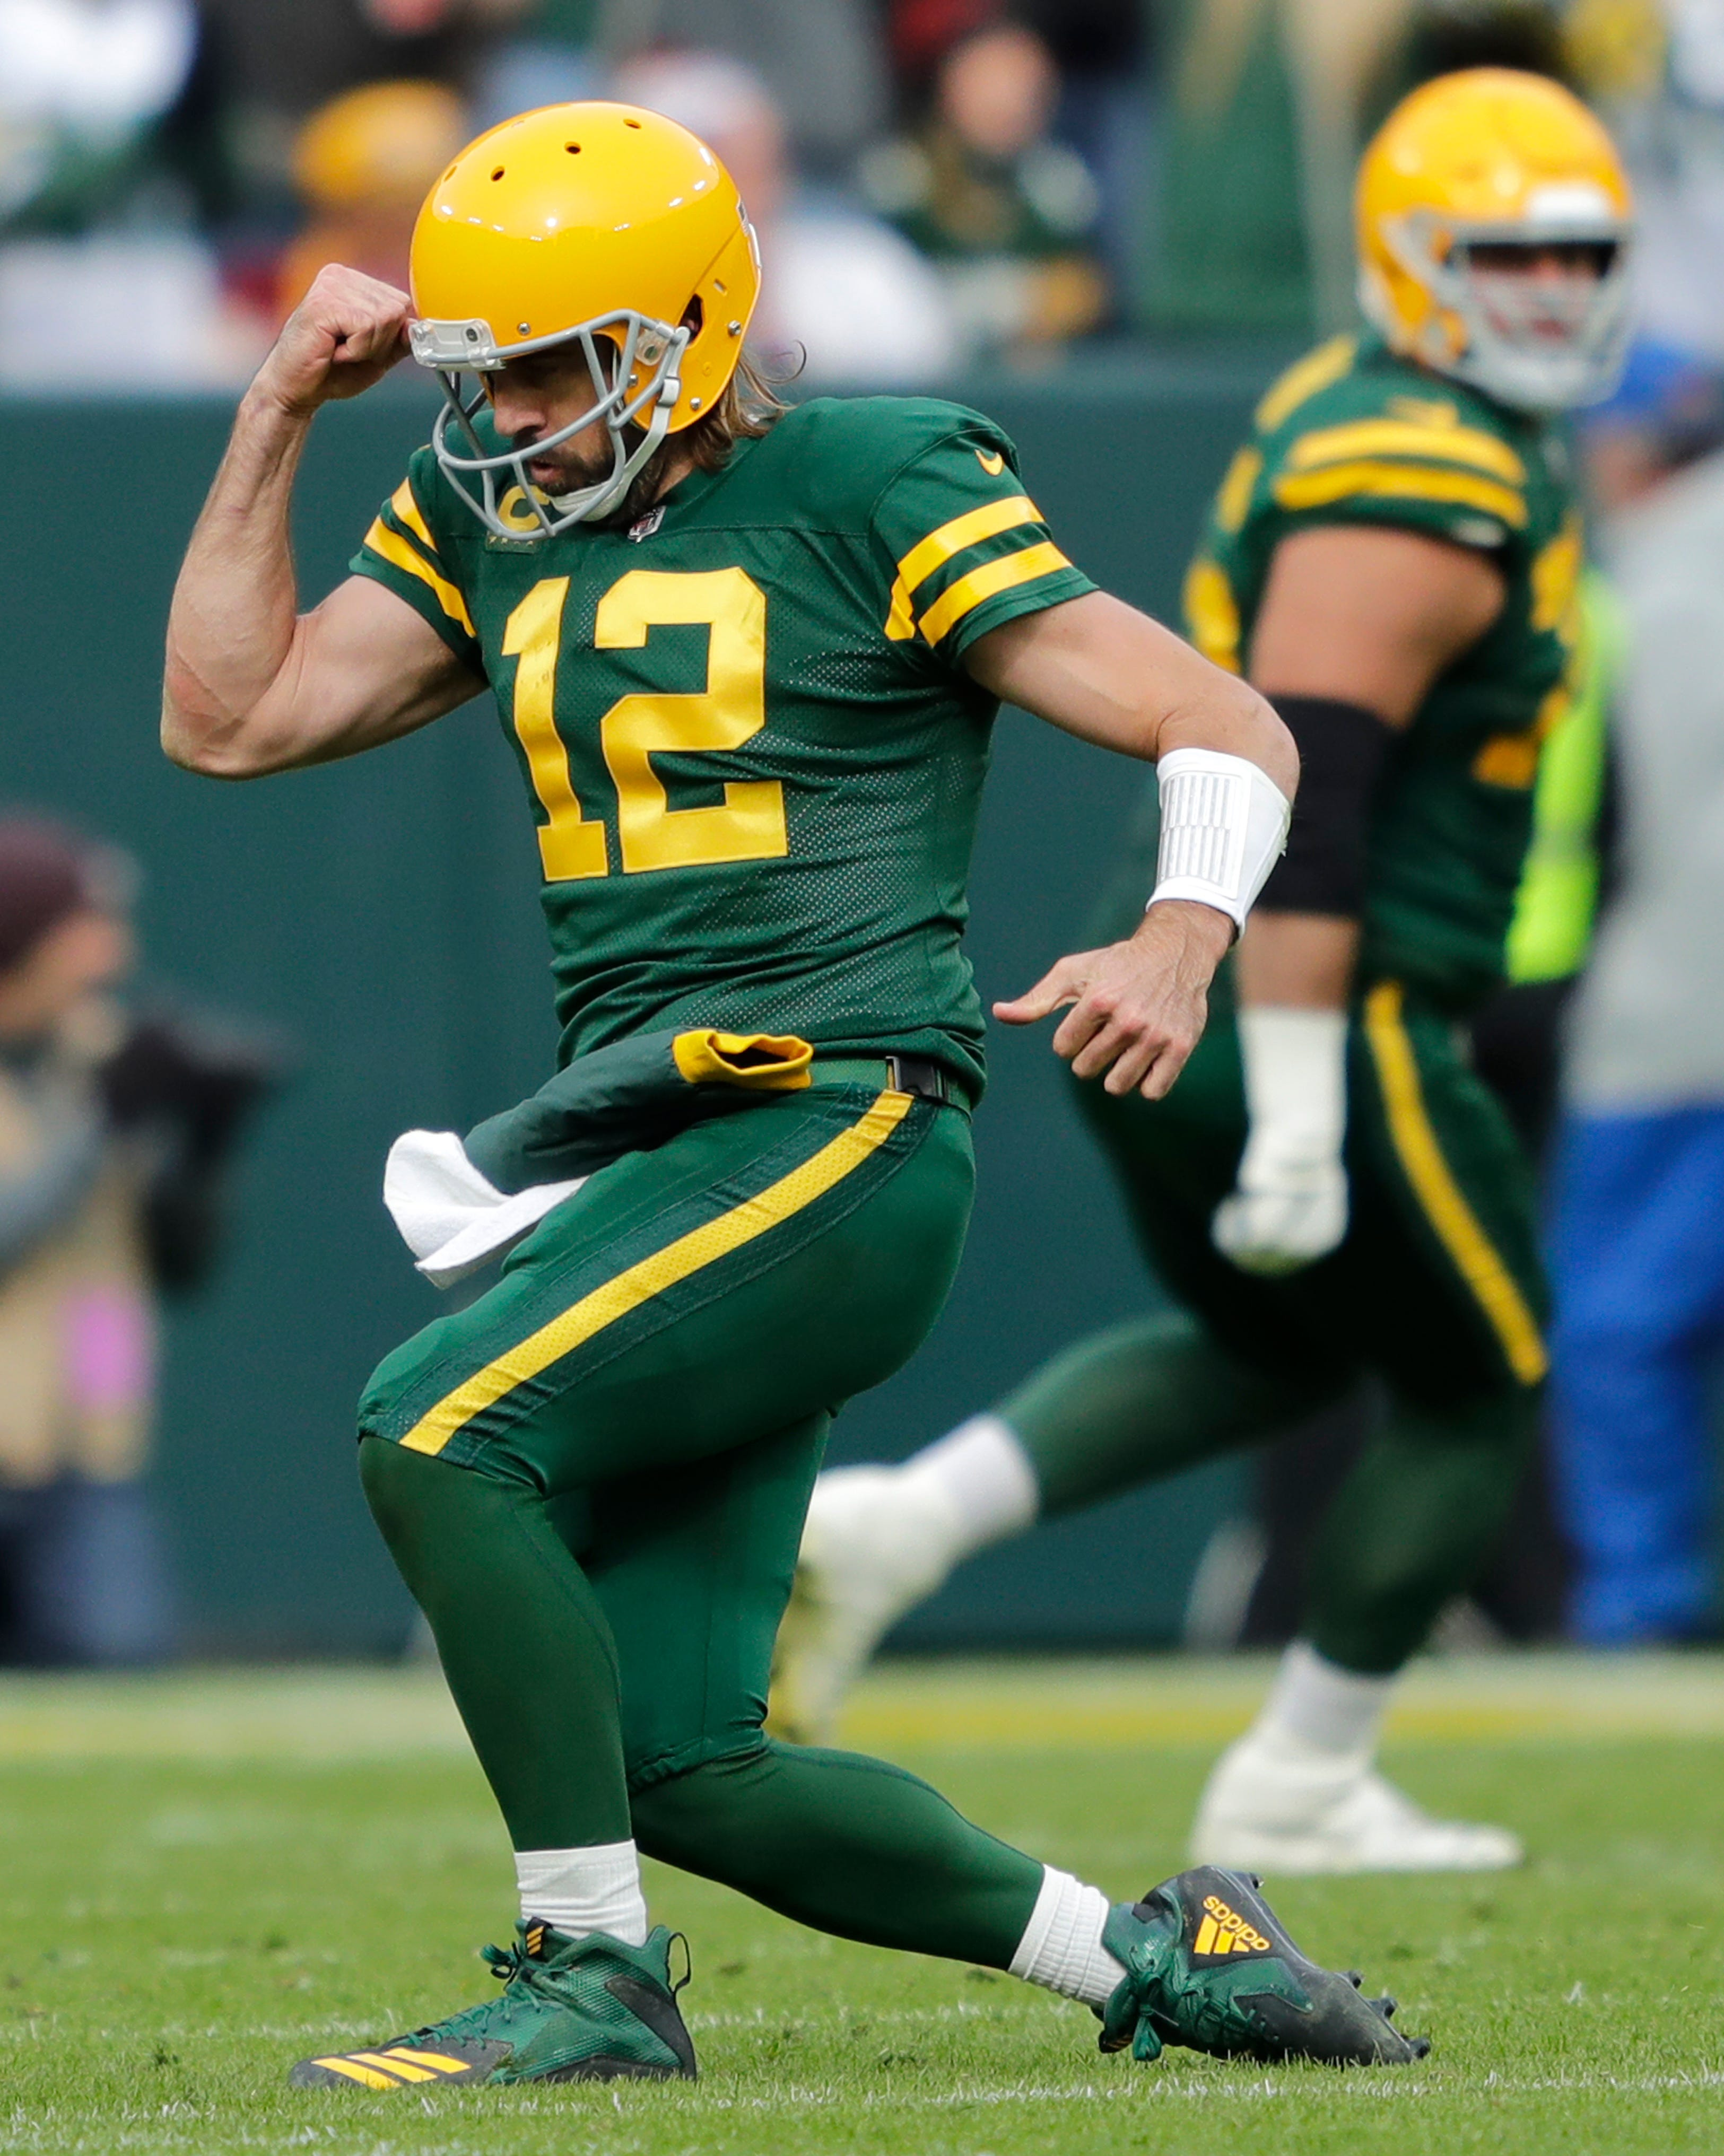 How do you think the Green Bay Packers played against Washington? Vote in our ratings.